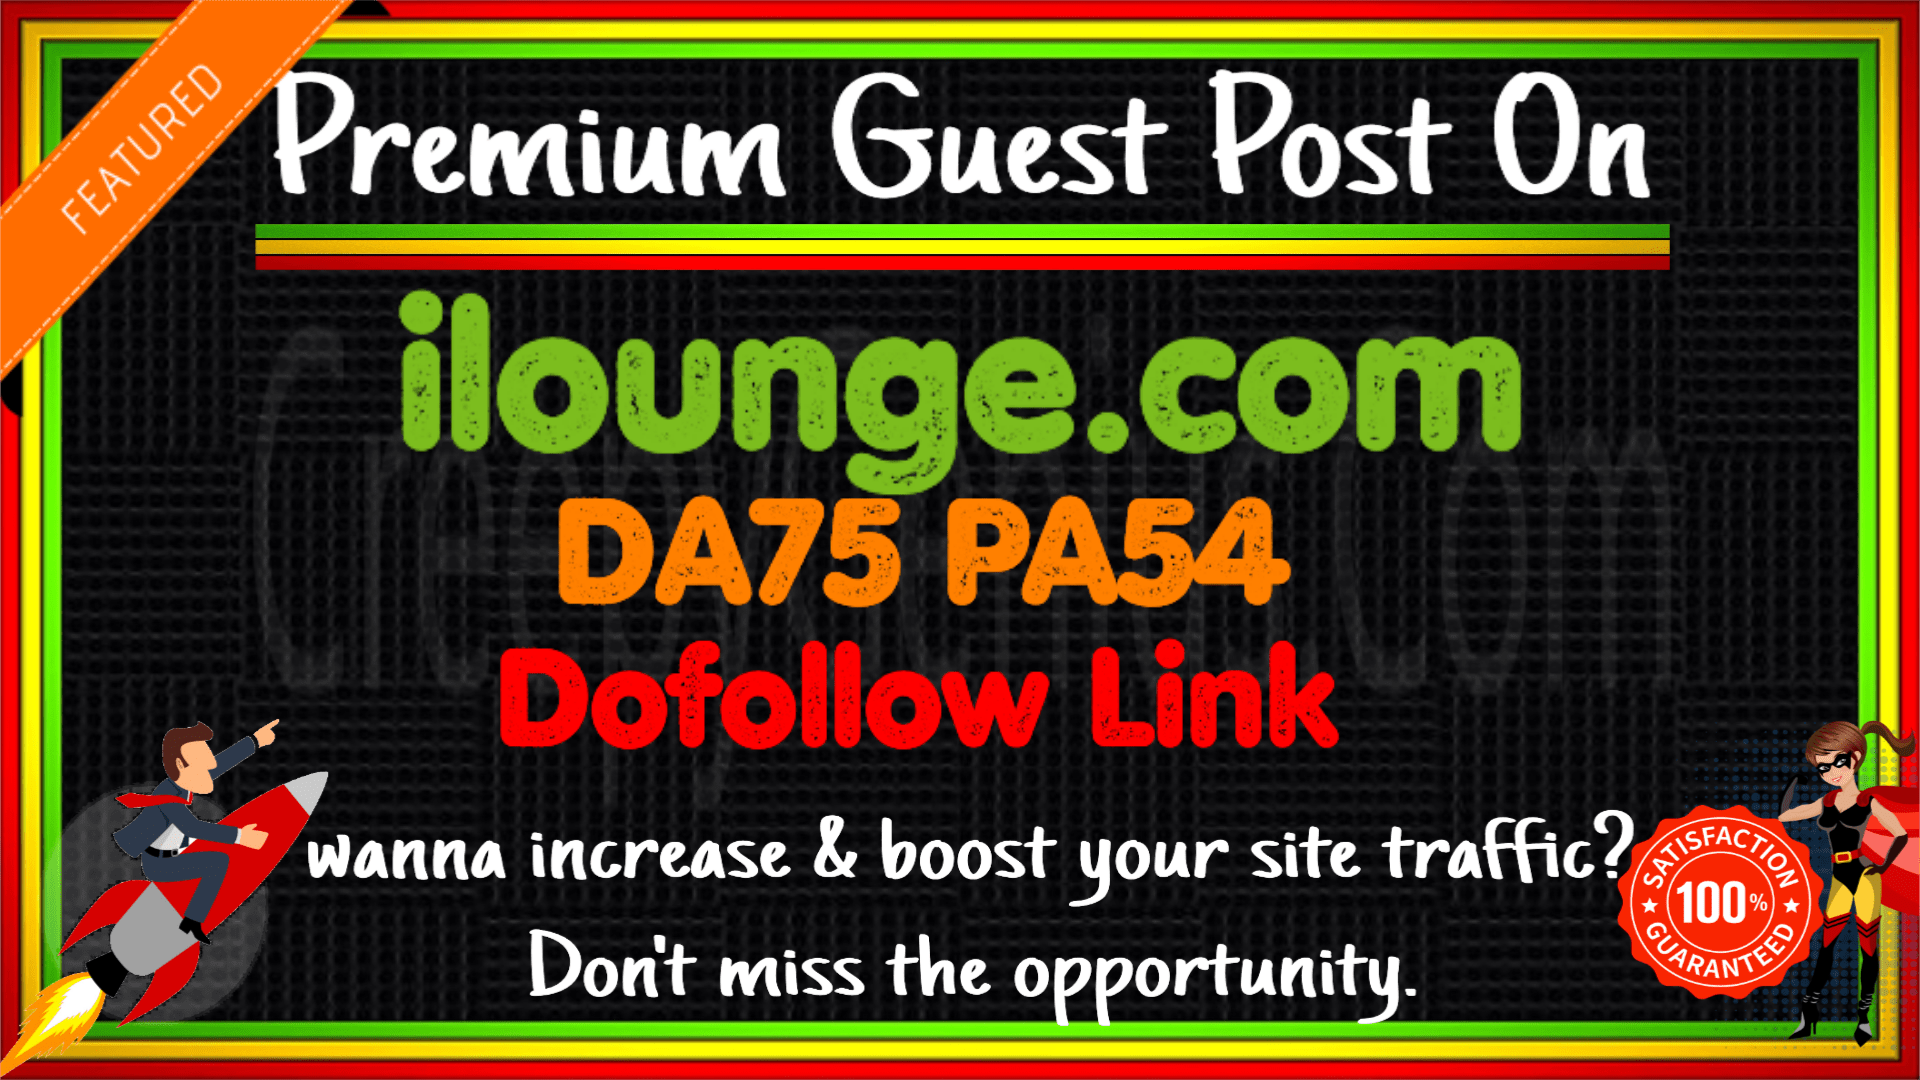 Publish A Guest Post On ilounge. com DA75 PA54 with DF